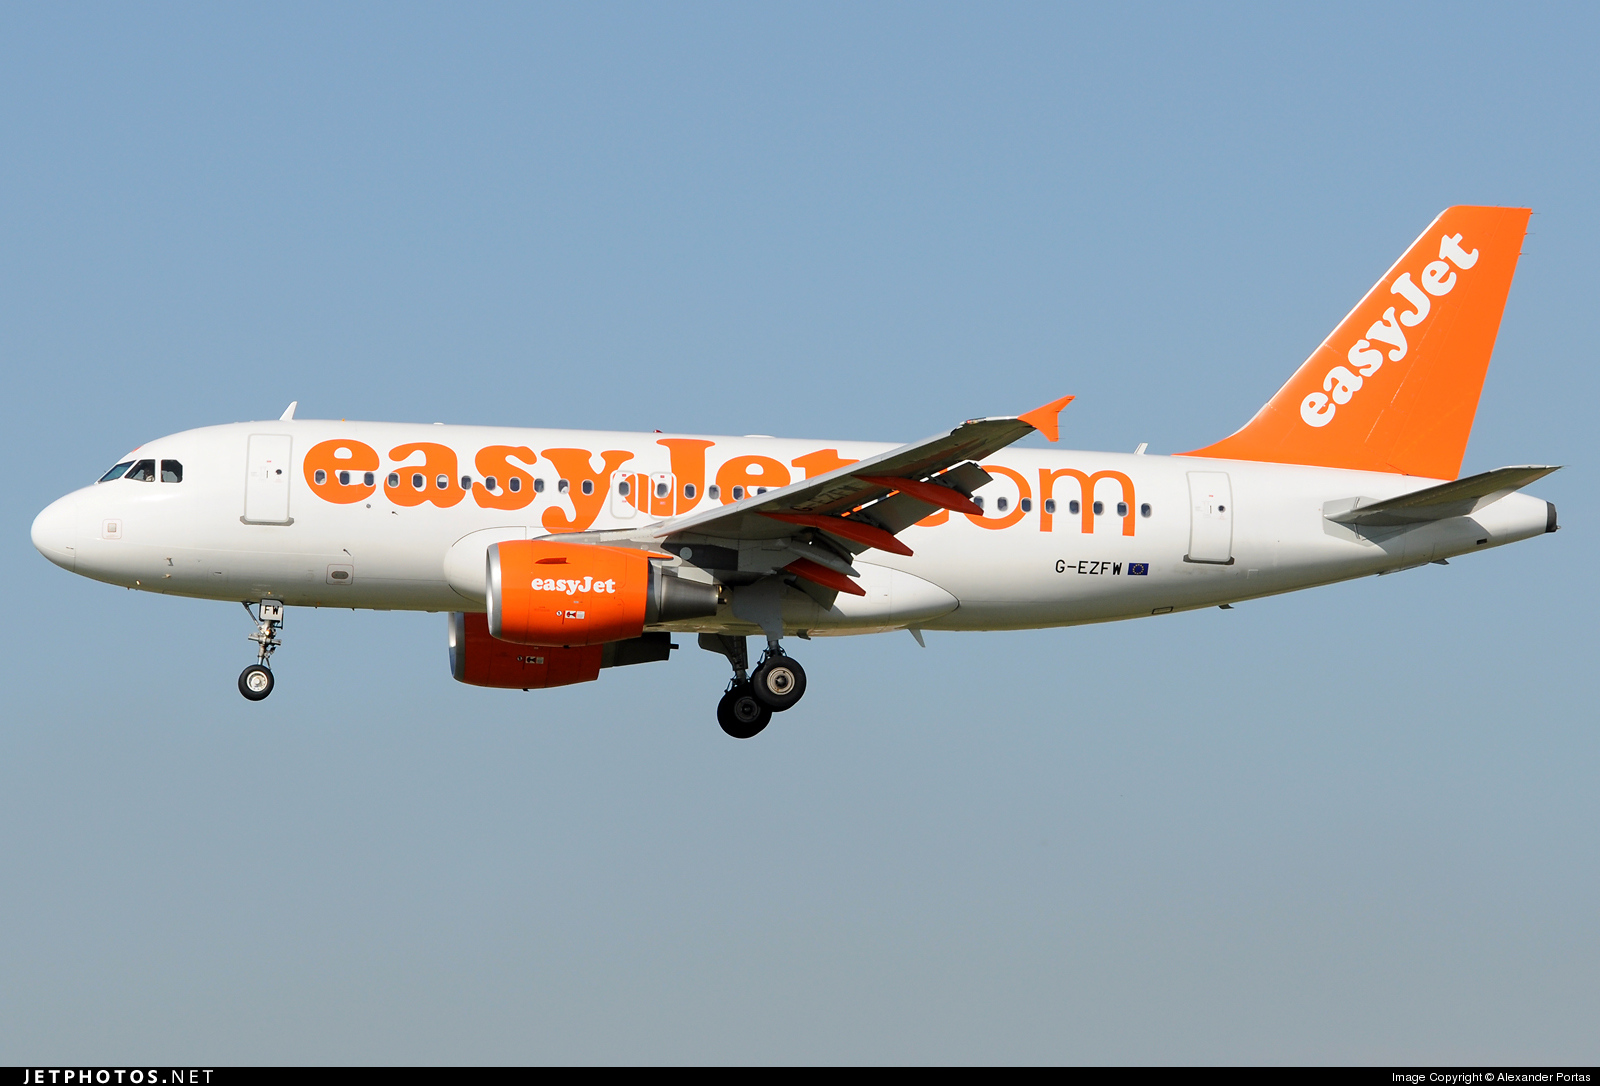 Photo of G-EZFW Airbus A319-111 by Alexander Portas